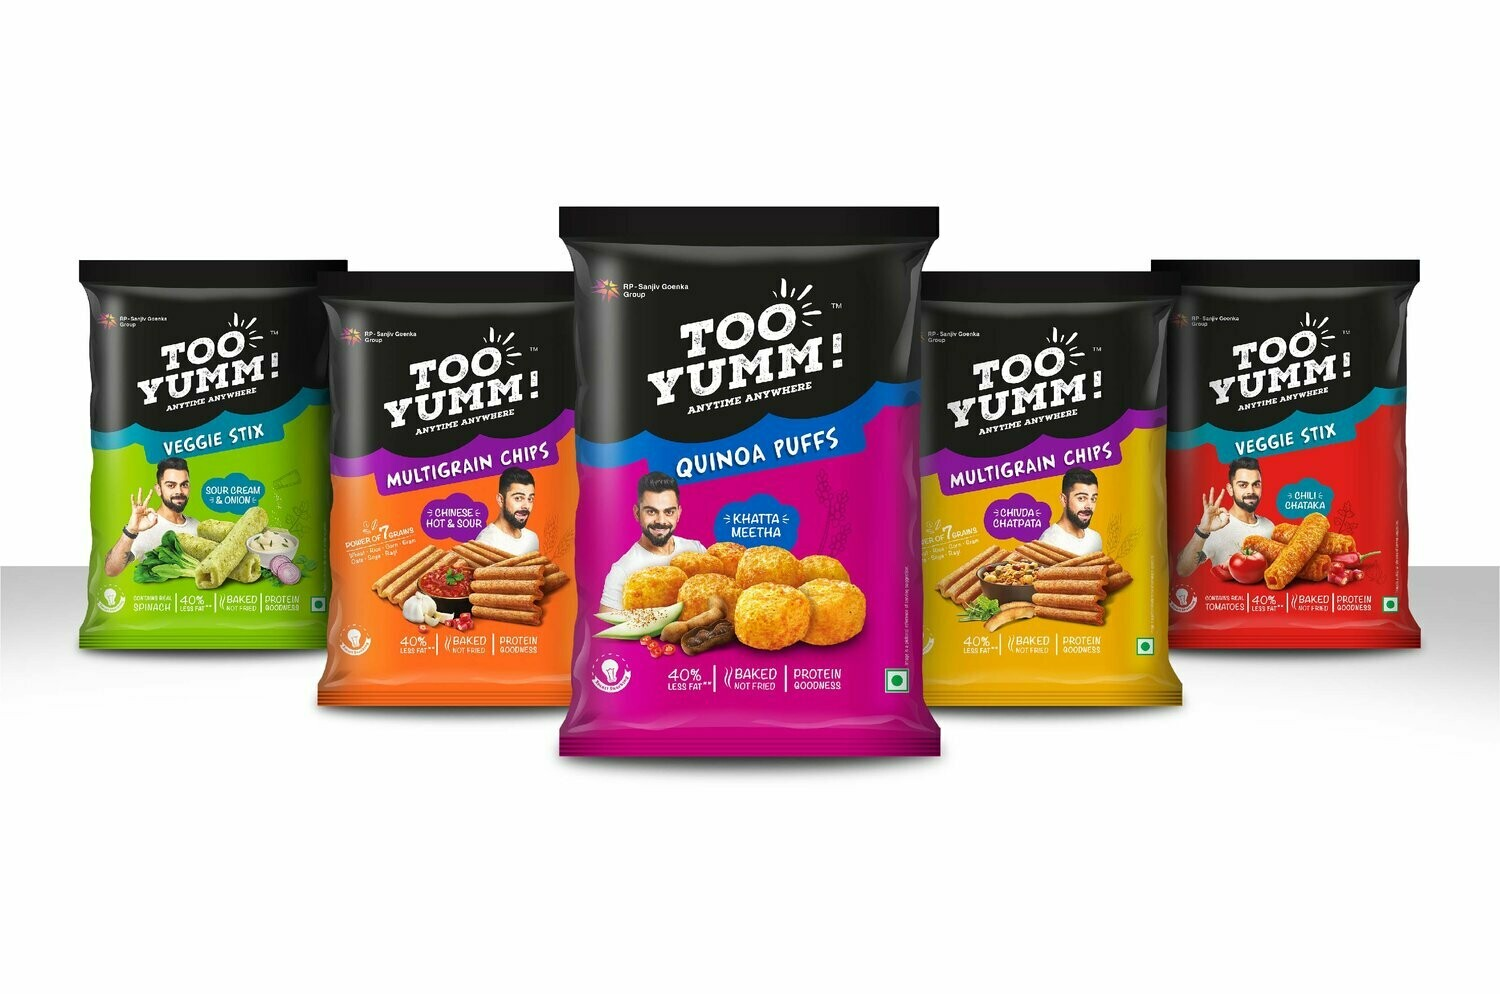 TOO YUMM HEALTHY SNACKS MIX 'N' MATCH BUY 3 @ $2.49